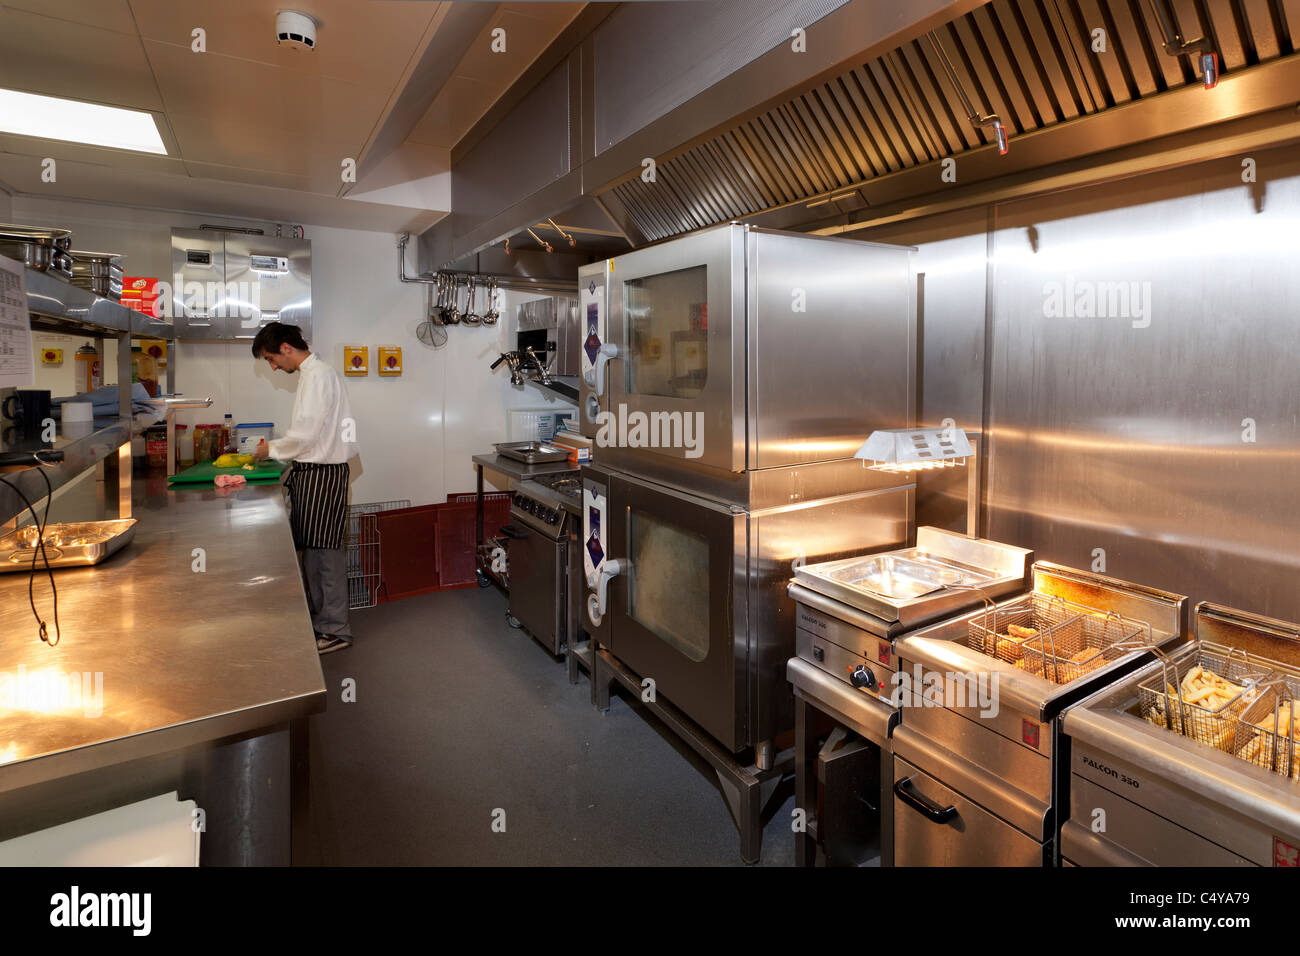 chef preparing food in Wantage Hall Reading University kitchen - Stock Image